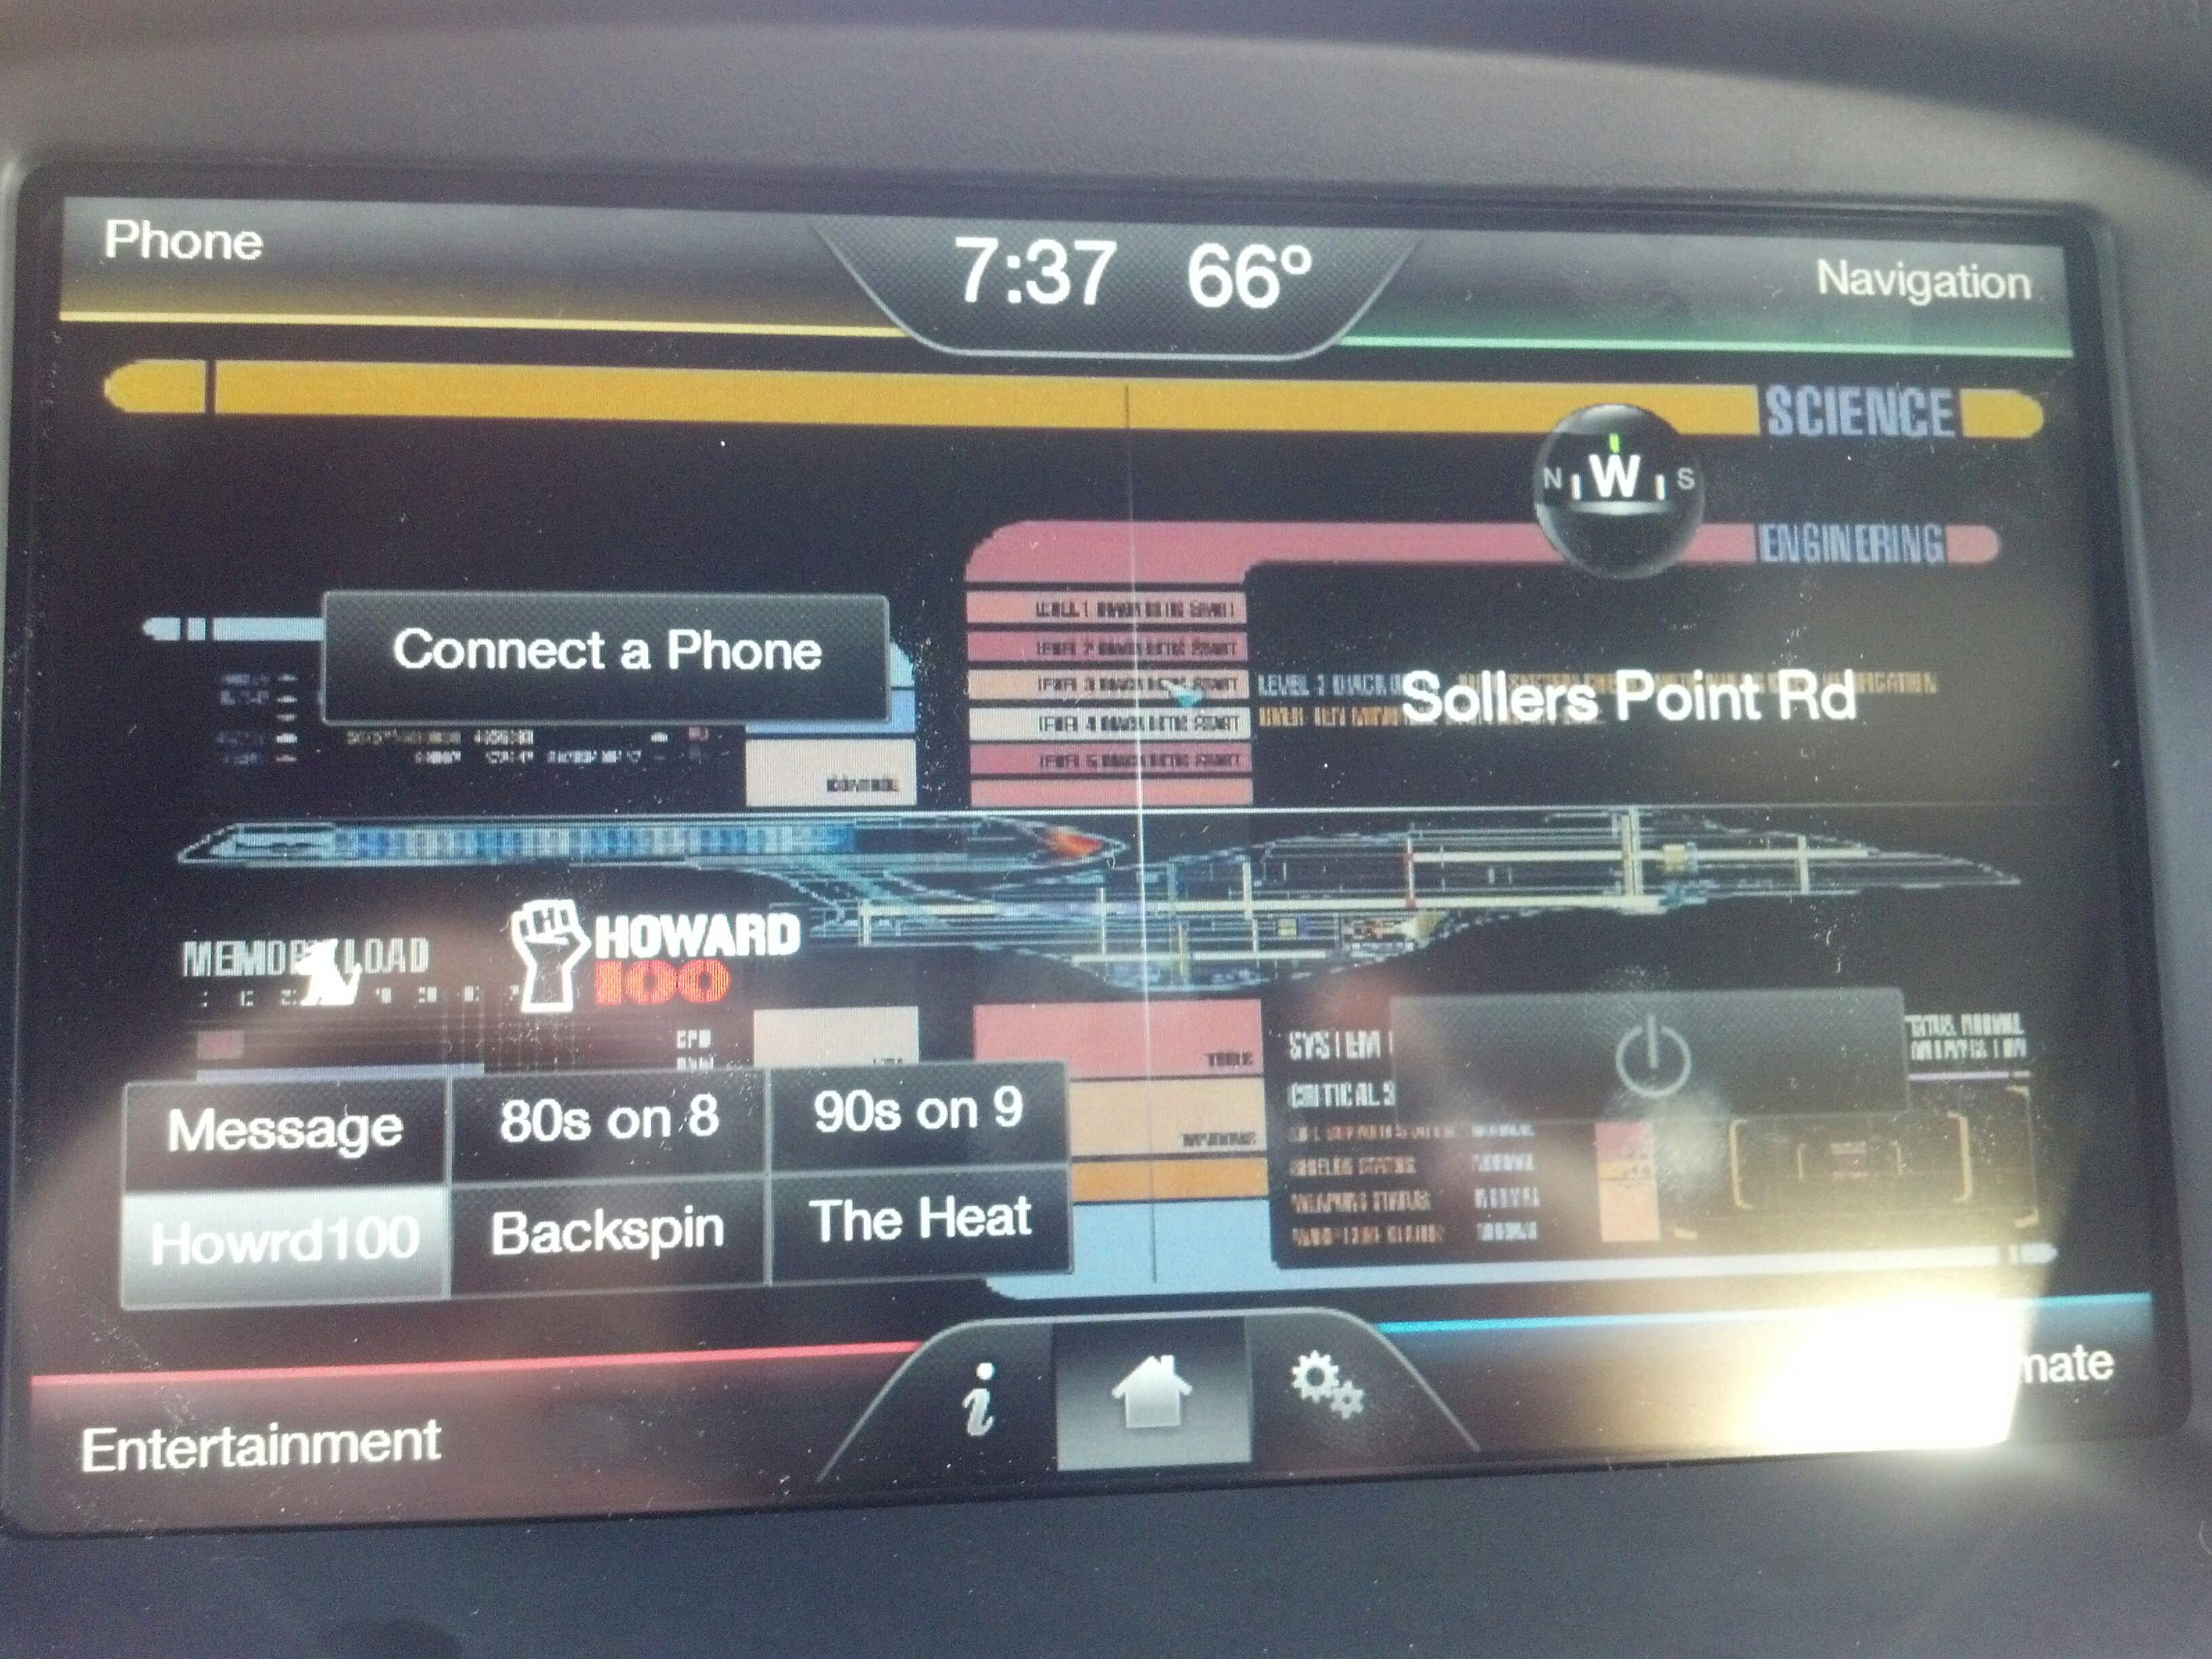 Ford SYNC Touch 800X384 Wallpaper myford touch wallpaper download 3264x2448